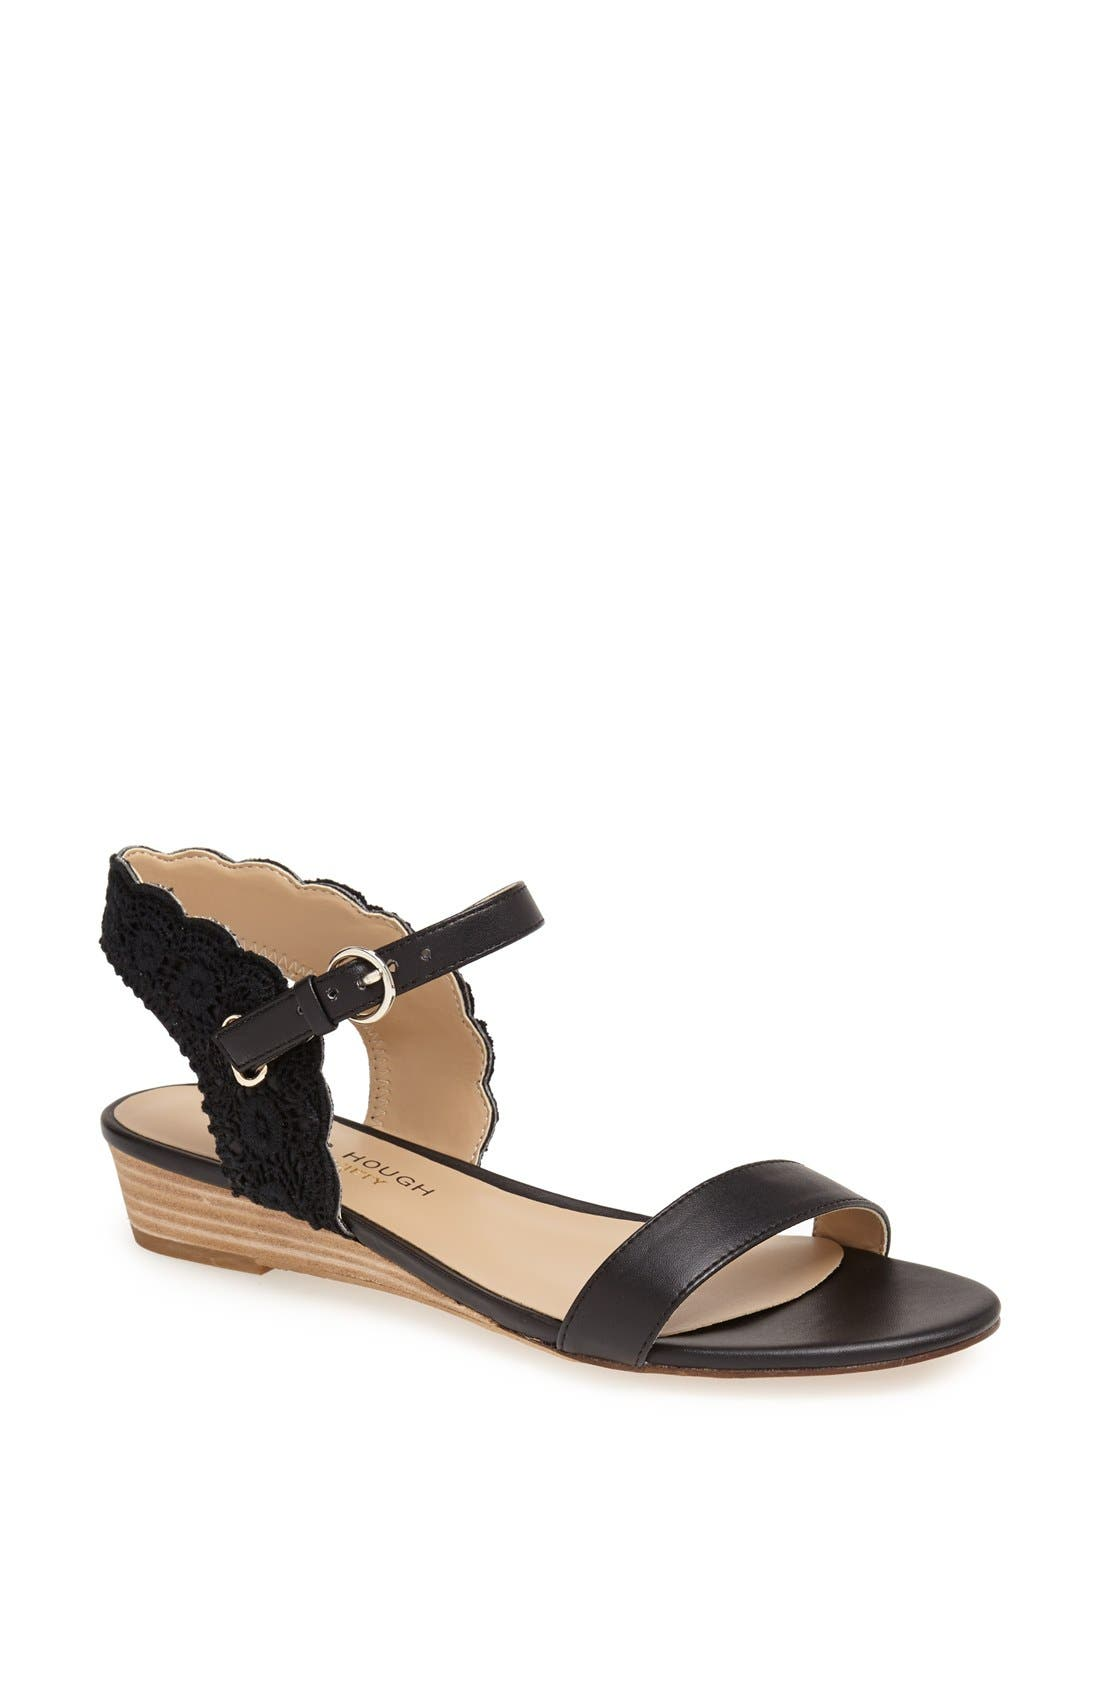 Main Image - Julianne Hough for Sole Society 'Robyn' Sandal